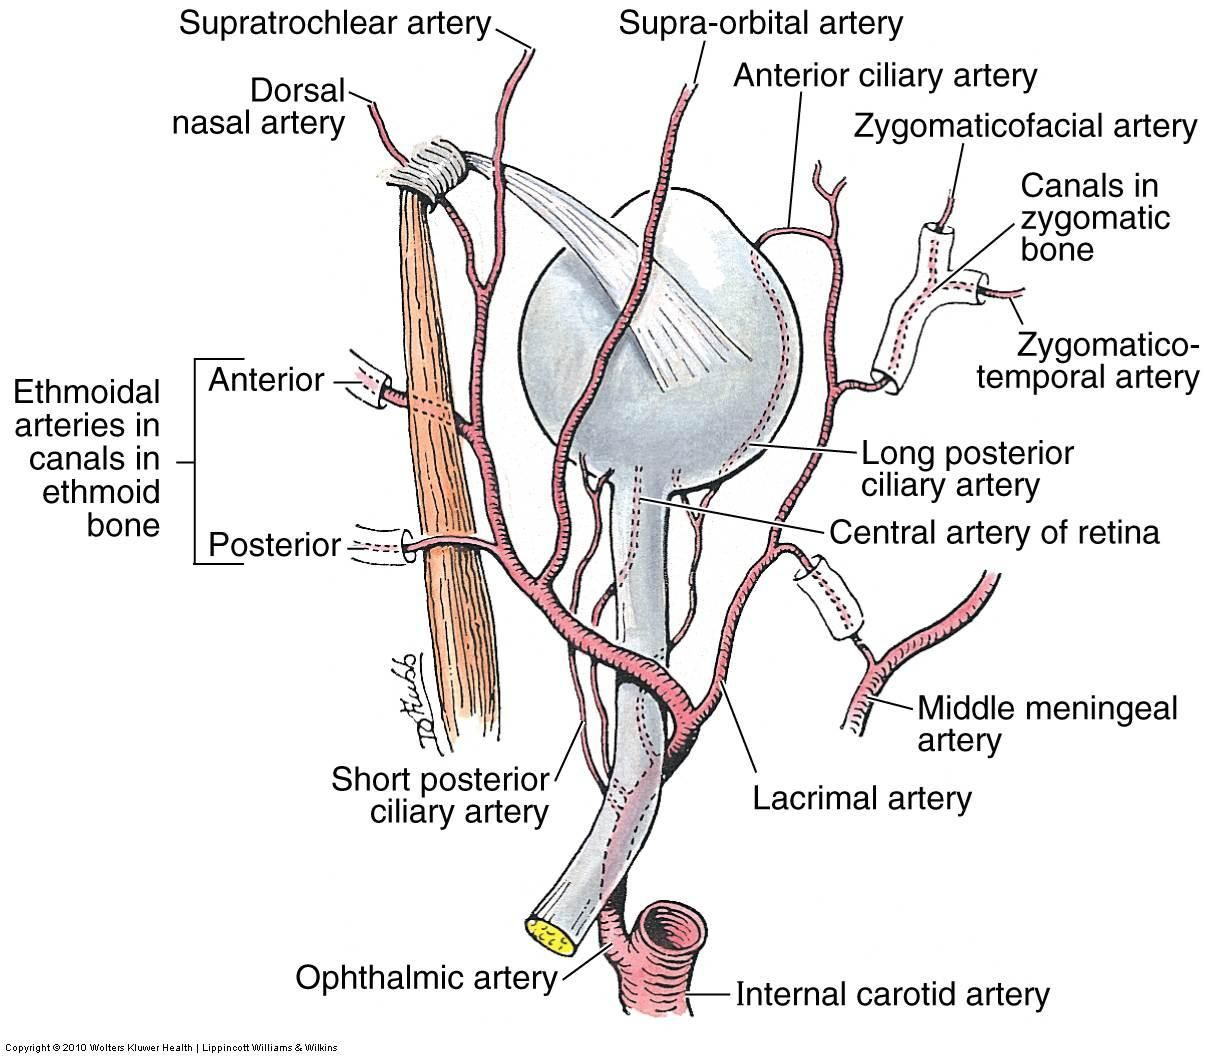 choroid artery central retinal artery - Google Search | Anatomy ...